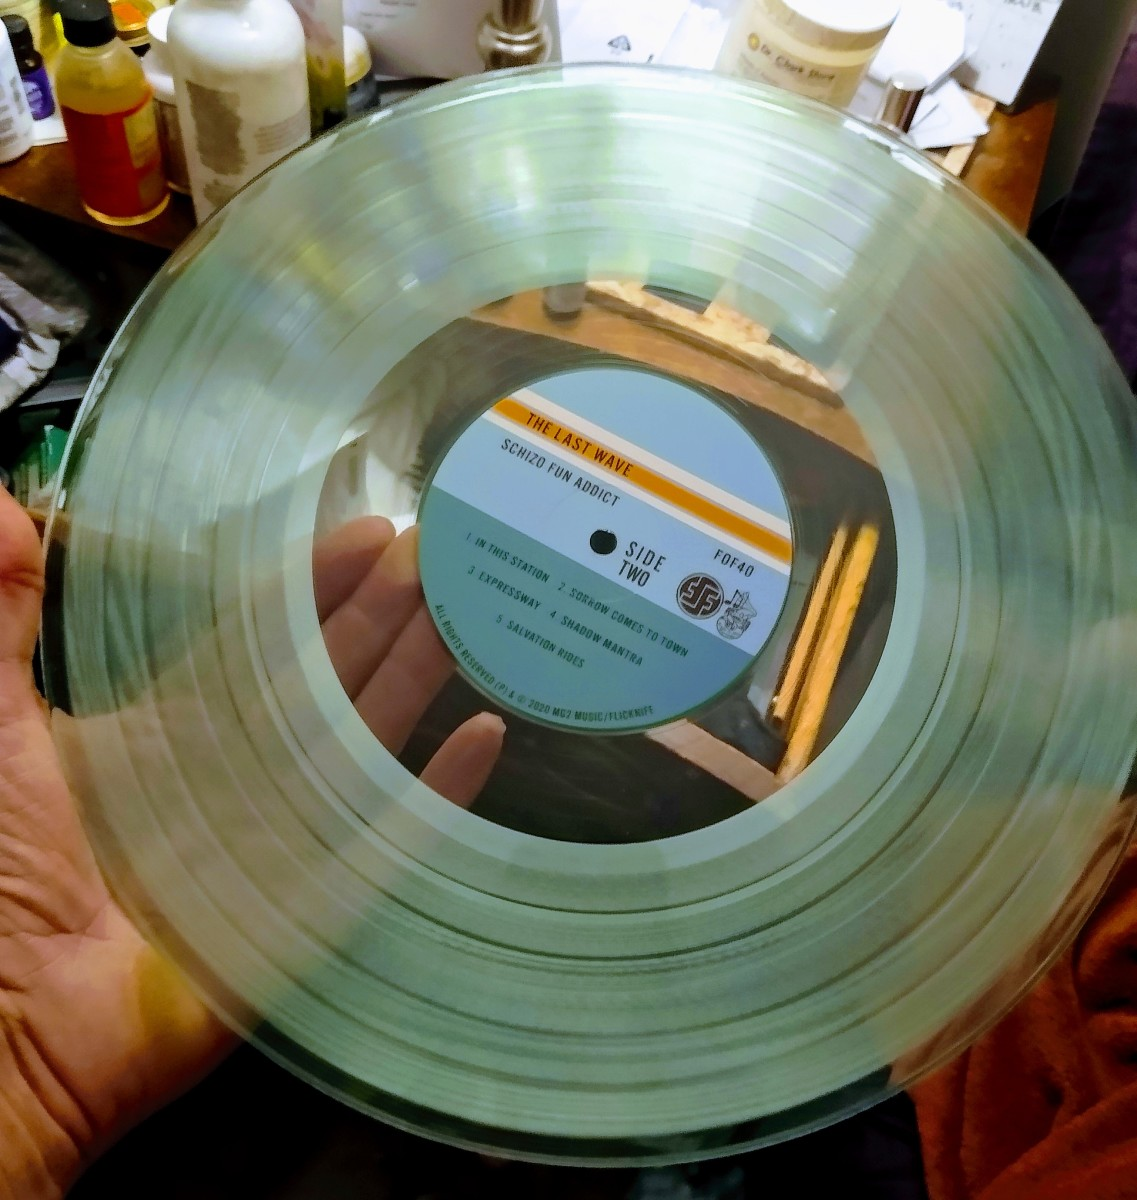 The translucent vinyl for the special edition of The Last Wave.